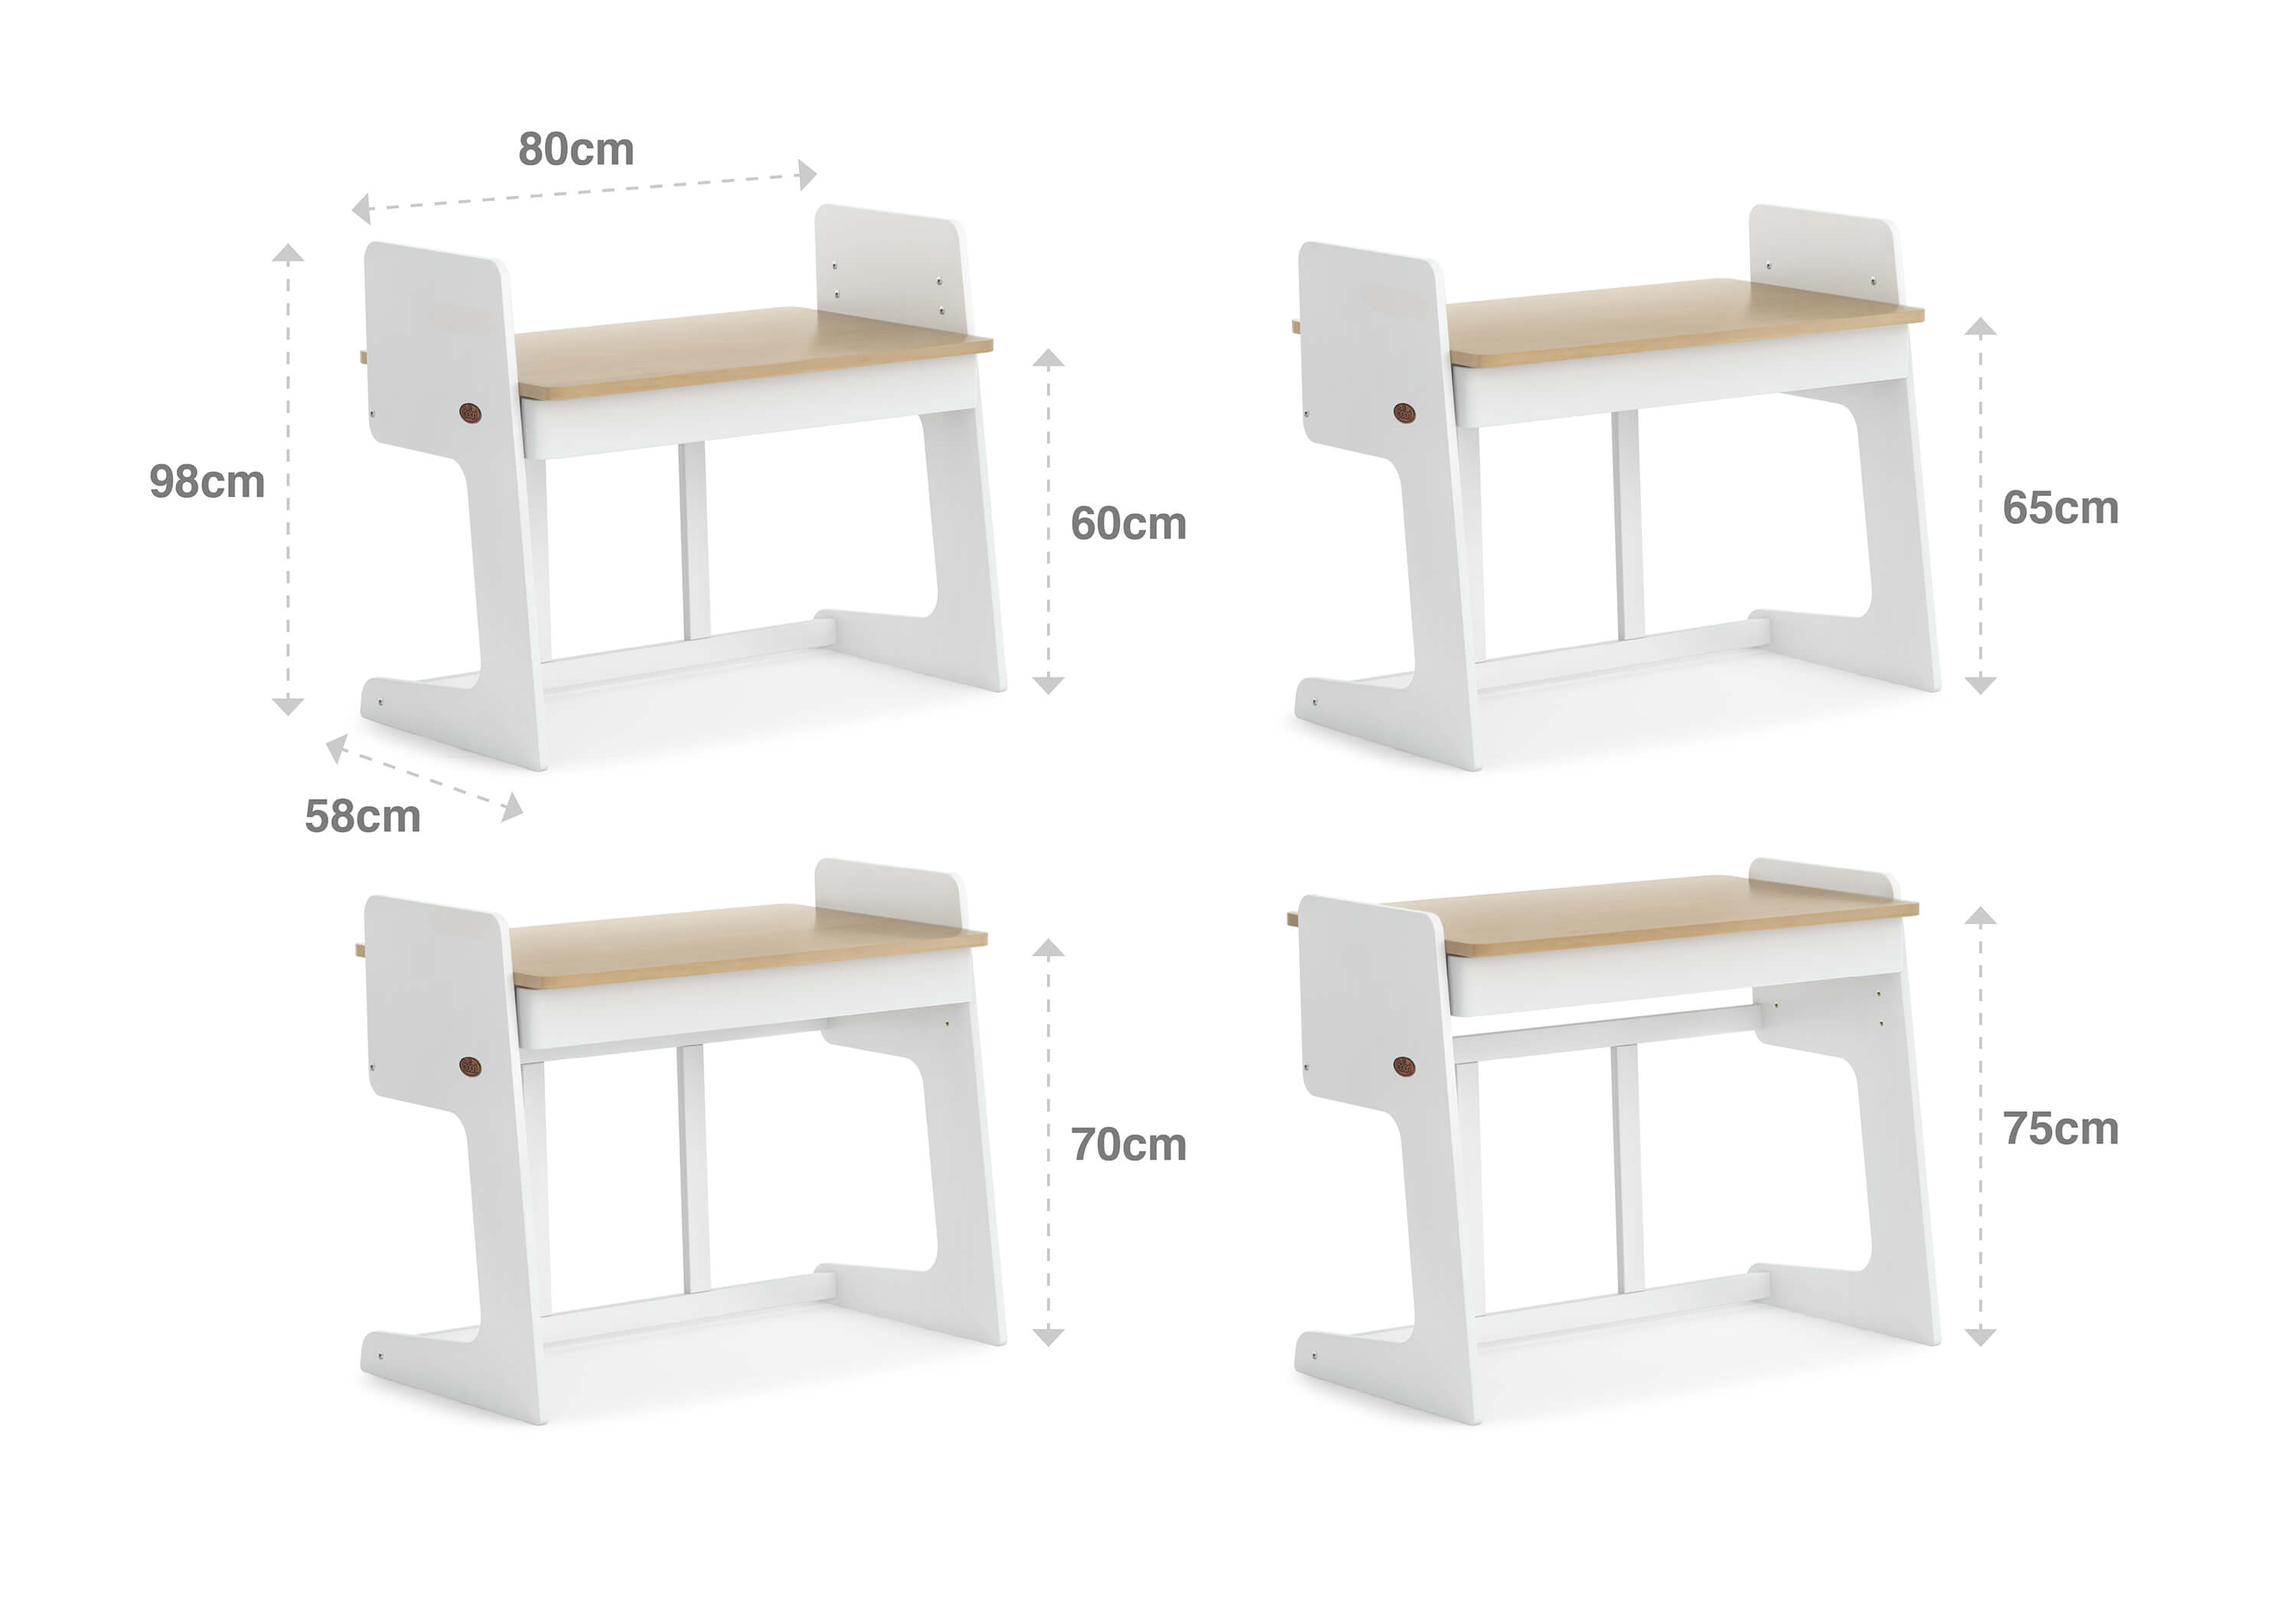 Product_Dimension_Images_Neat_Study_Desk_BAAD__June_2021__2x